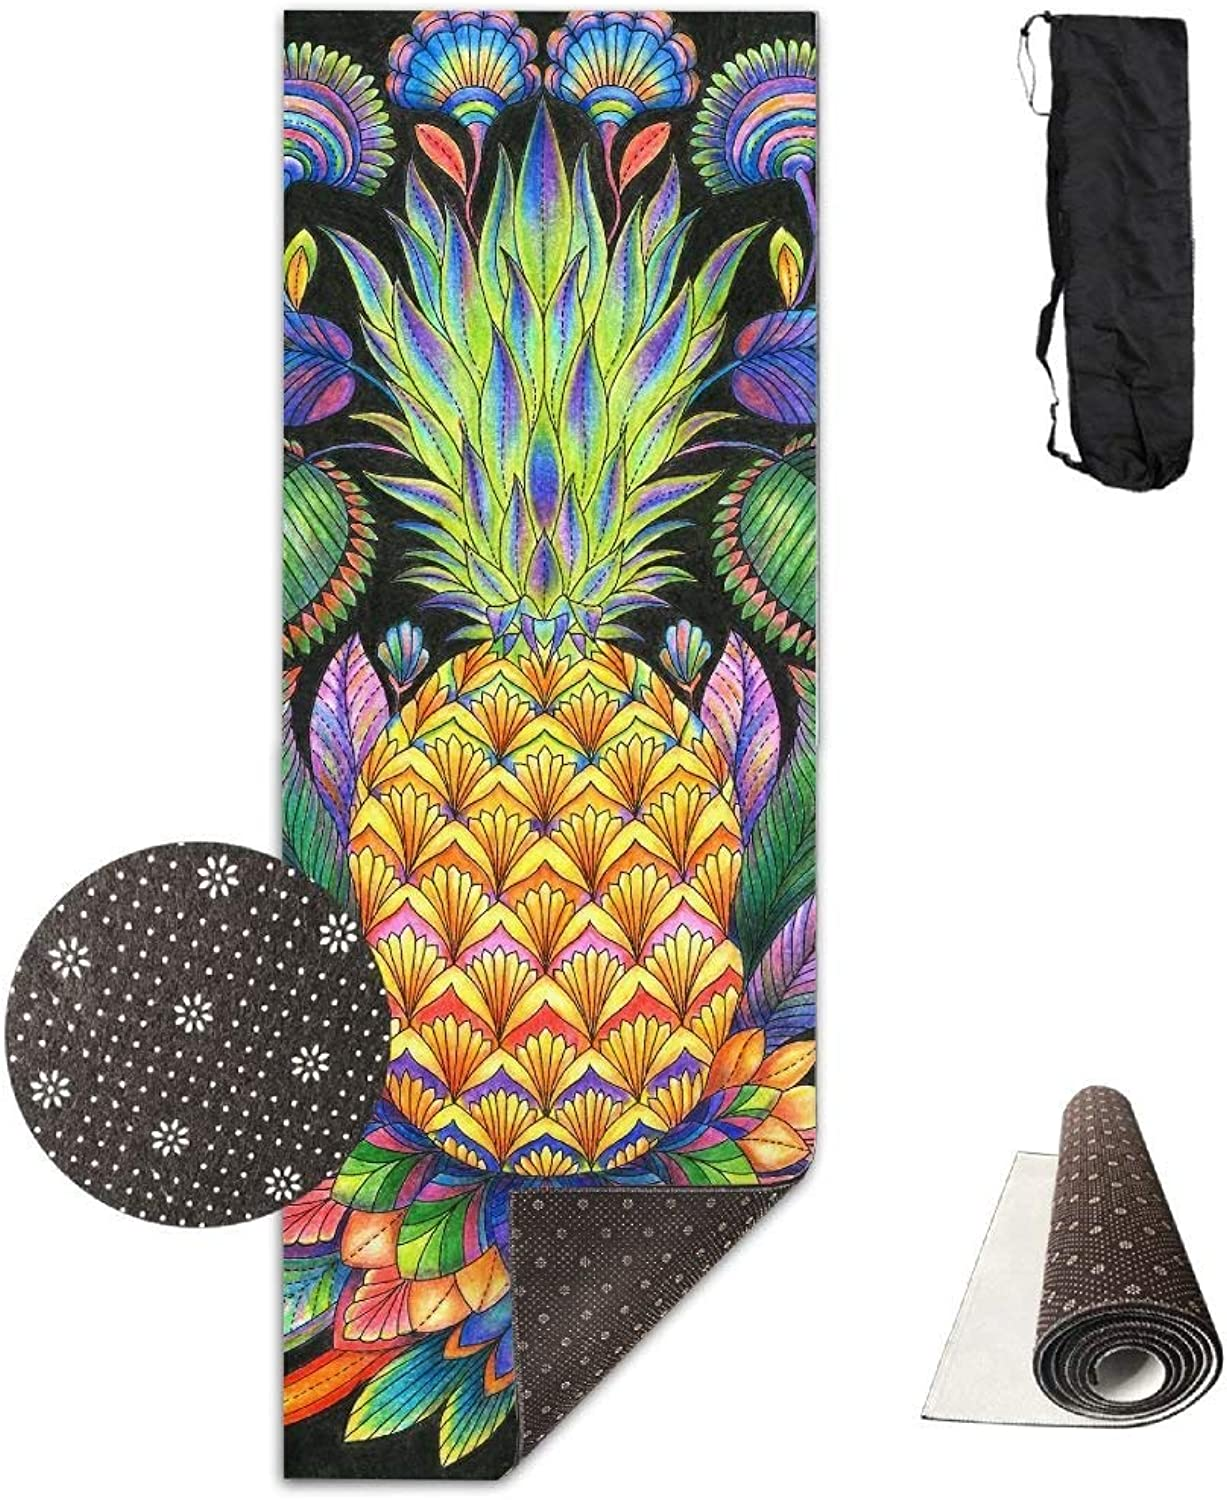 Pineapple Tattoo Yoga Mat Towel for Bikram Hot Yoga, Yoga and Pilates, Paddle Board Yoga, Sports, Exercise, Fitness Towel